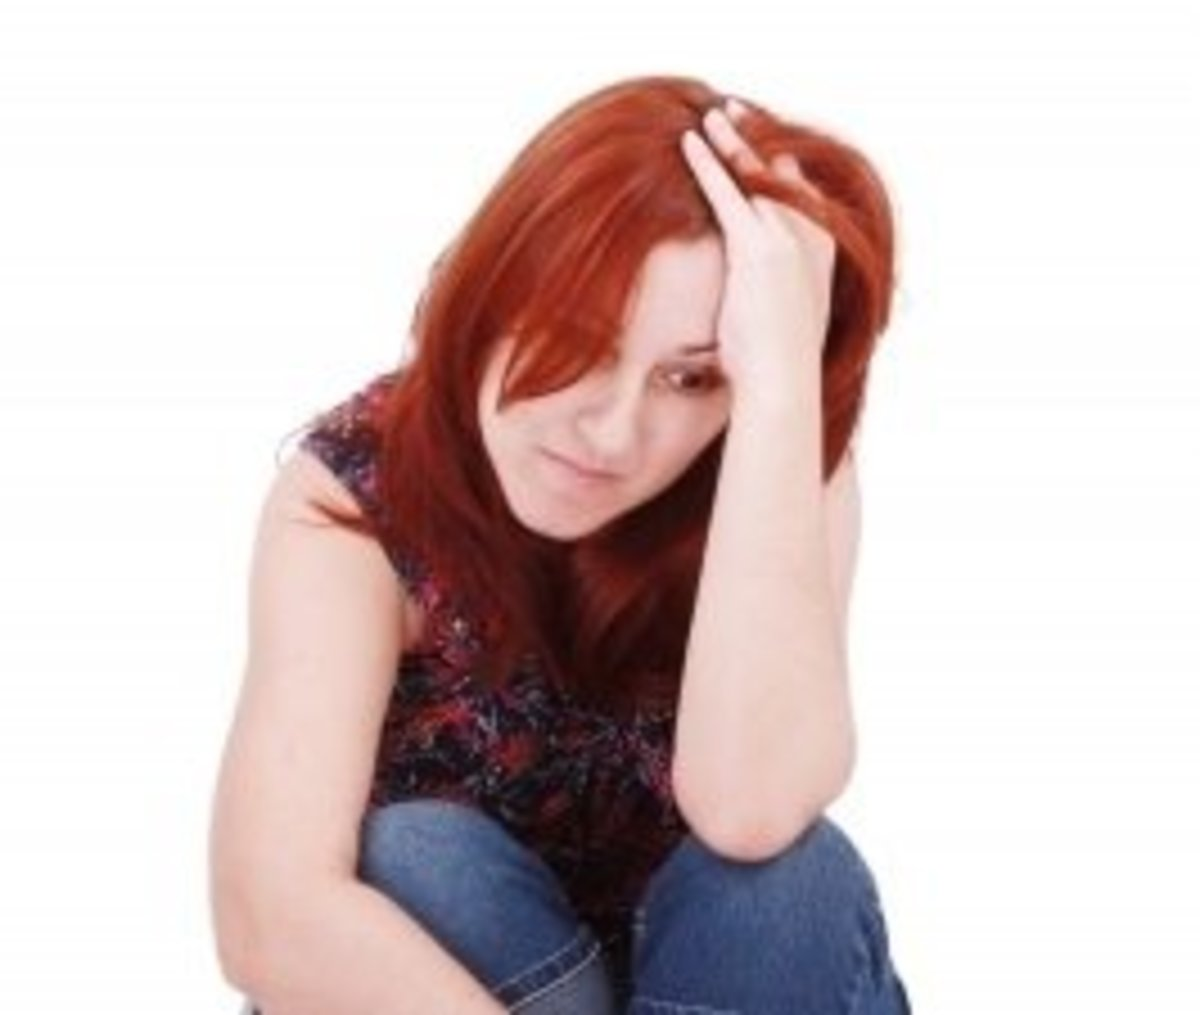 Emotions such as anxiety may be a significant factor in belief formation.